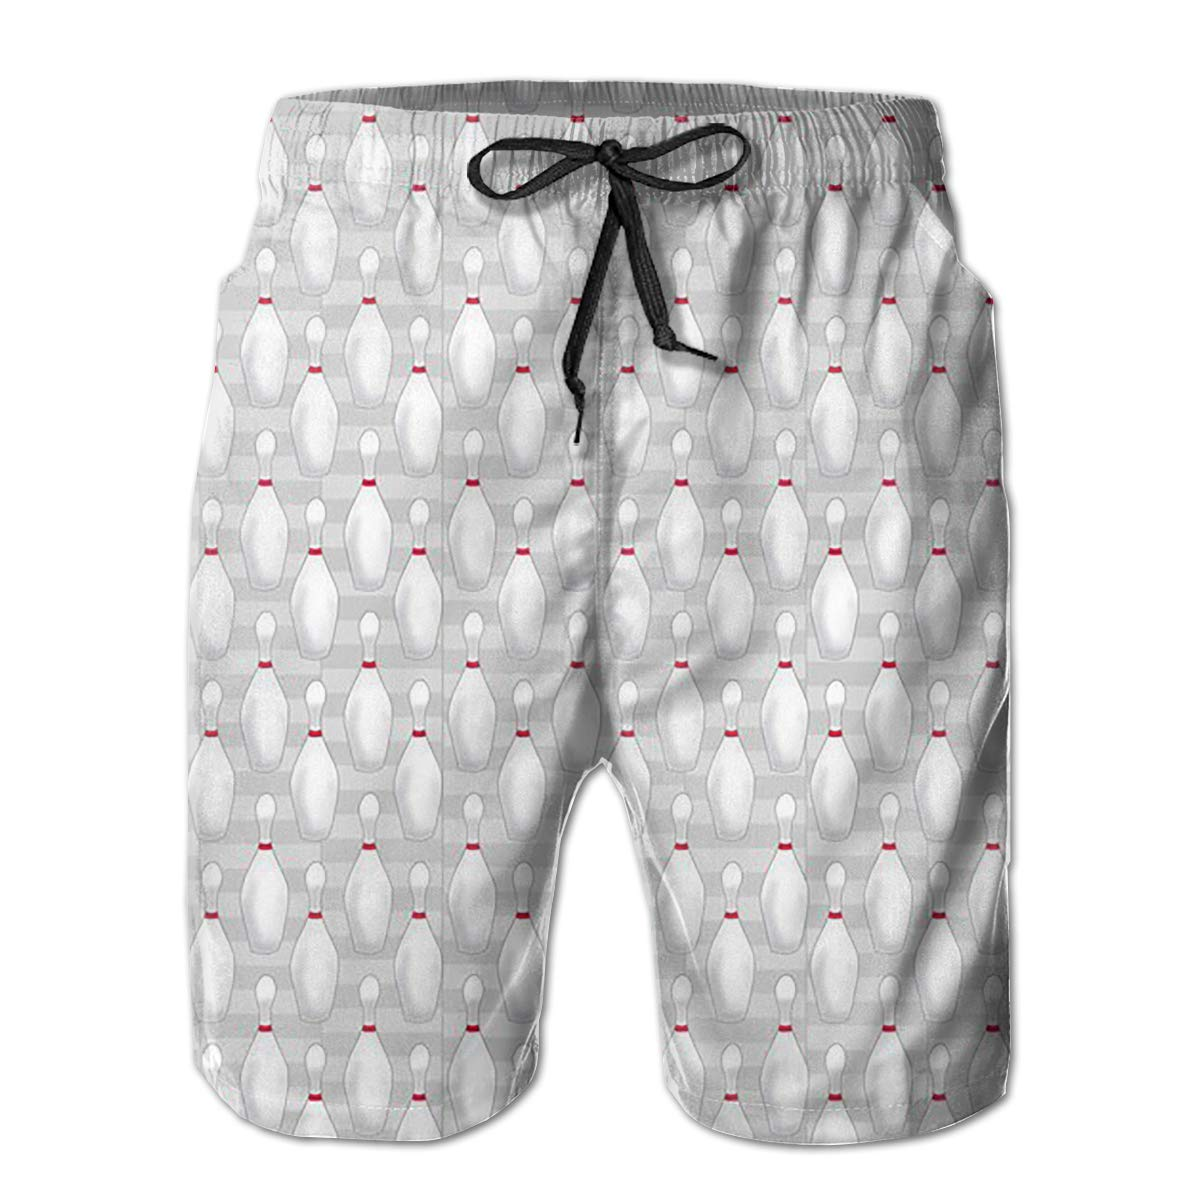 FASUWAVE Mens Swim Trunks Bowling Pin Quick Dry Beach Board Shorts with Mesh Lining